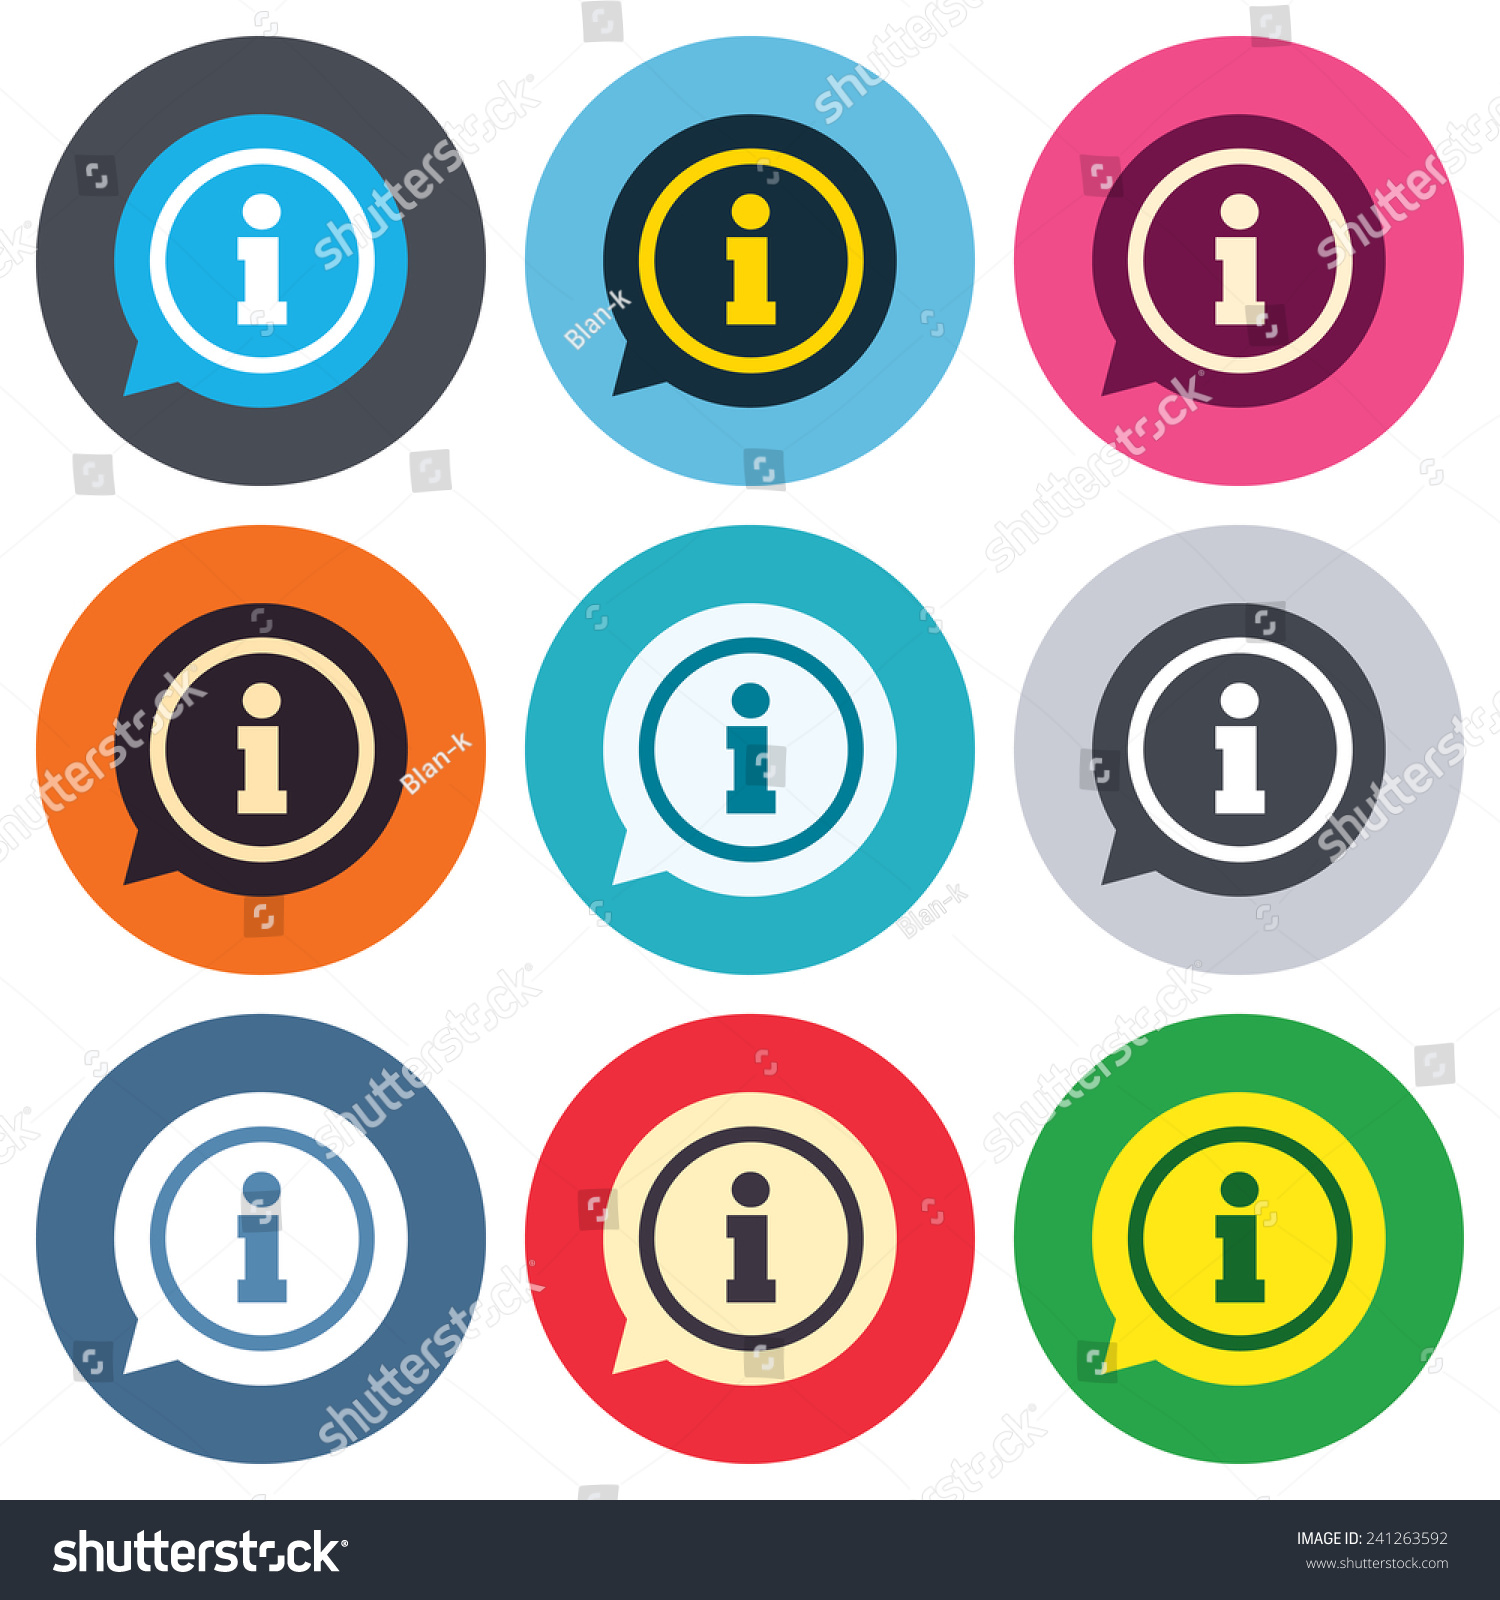 Information sign icon. Info speech bubble symbol. Colored round ...